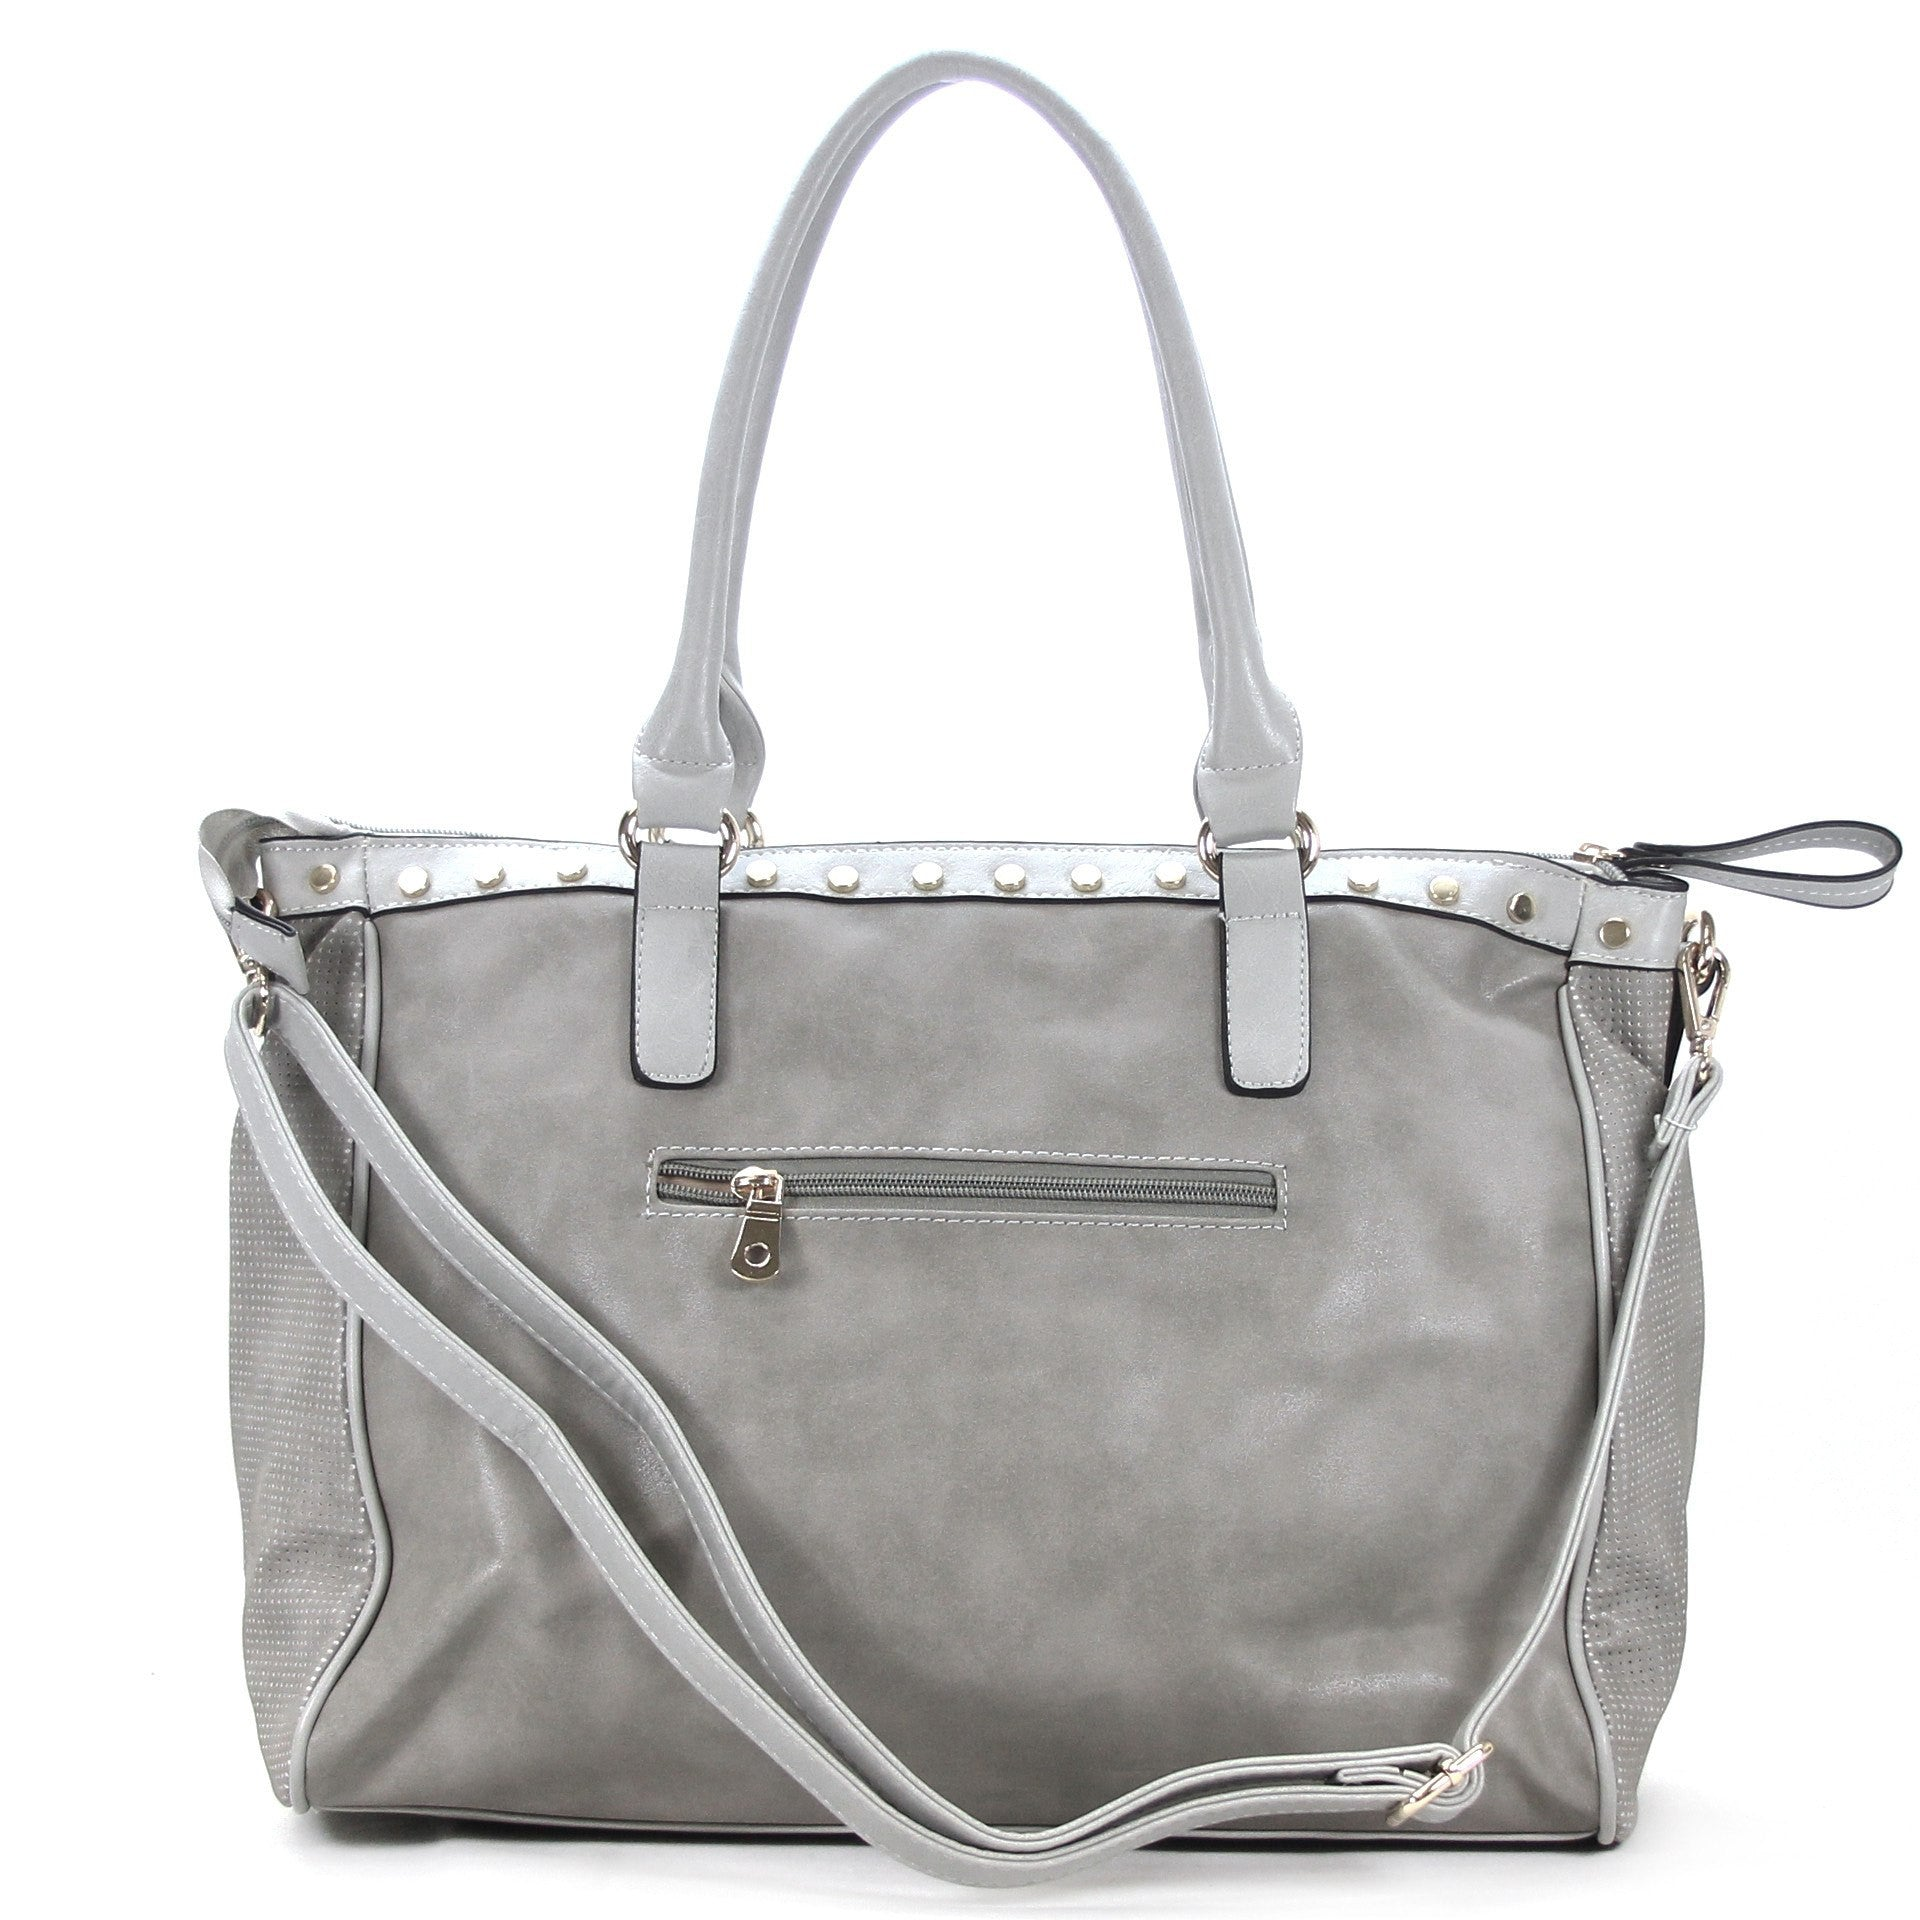 Handbag, Tote, Shoulder Bag - Robert Matthew Giana Tote - Platinum